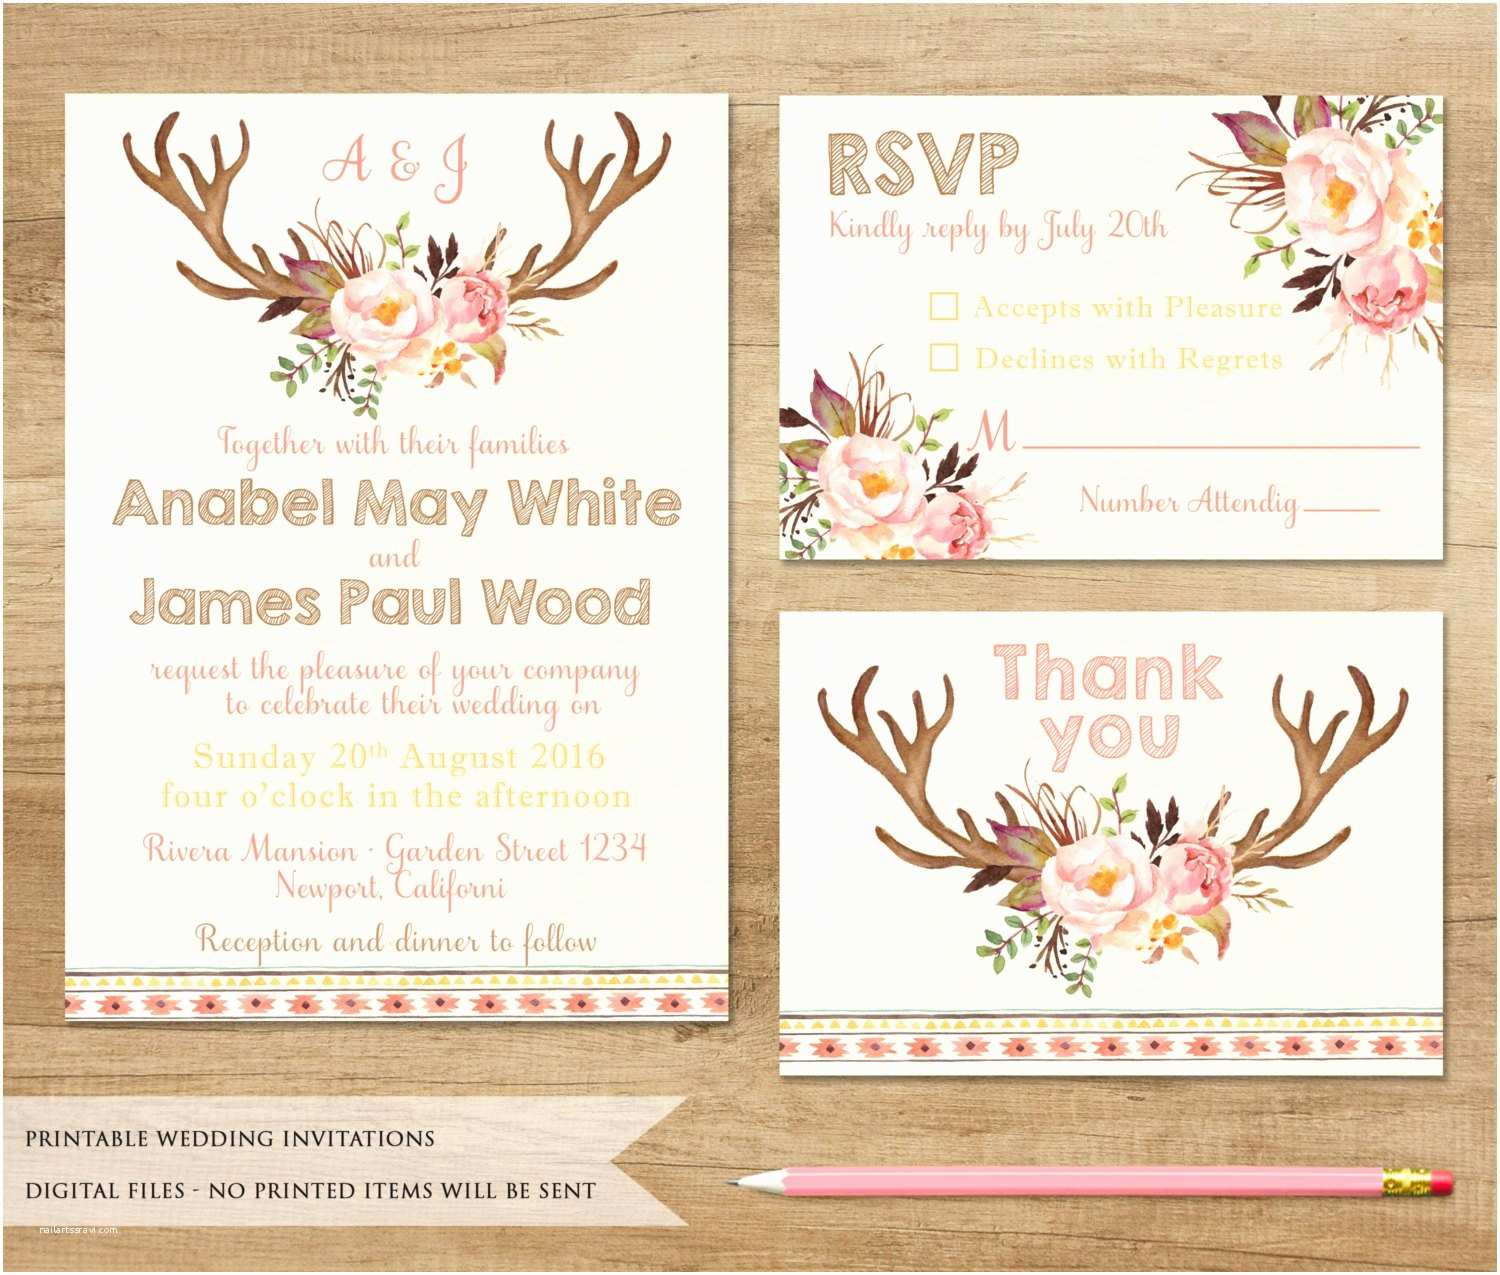 Antler Wedding Invitations Antler and Flowers Wedding Invitation Printable Wedding